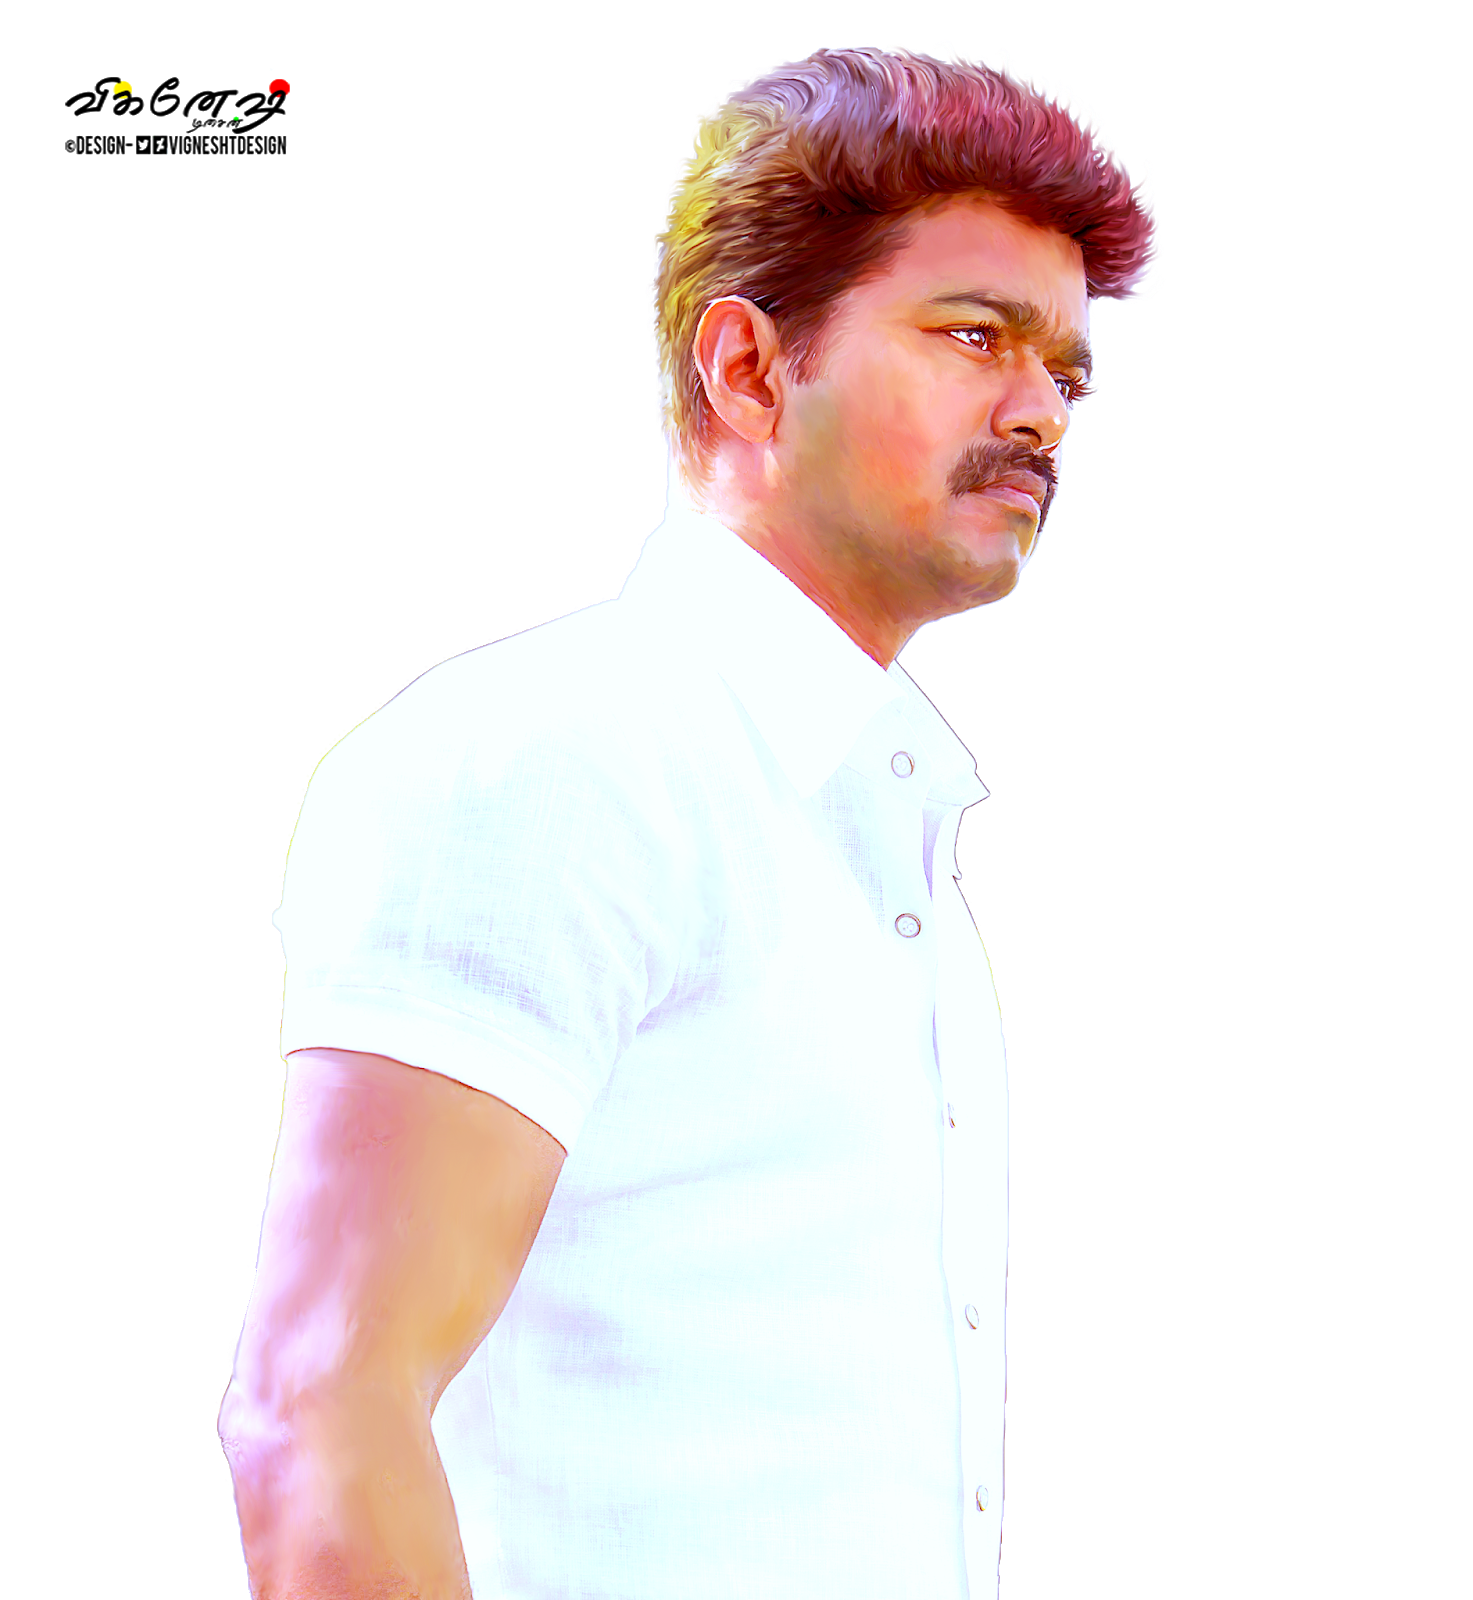 VIJAY ALL HD PICTURES: Vijay png images download.